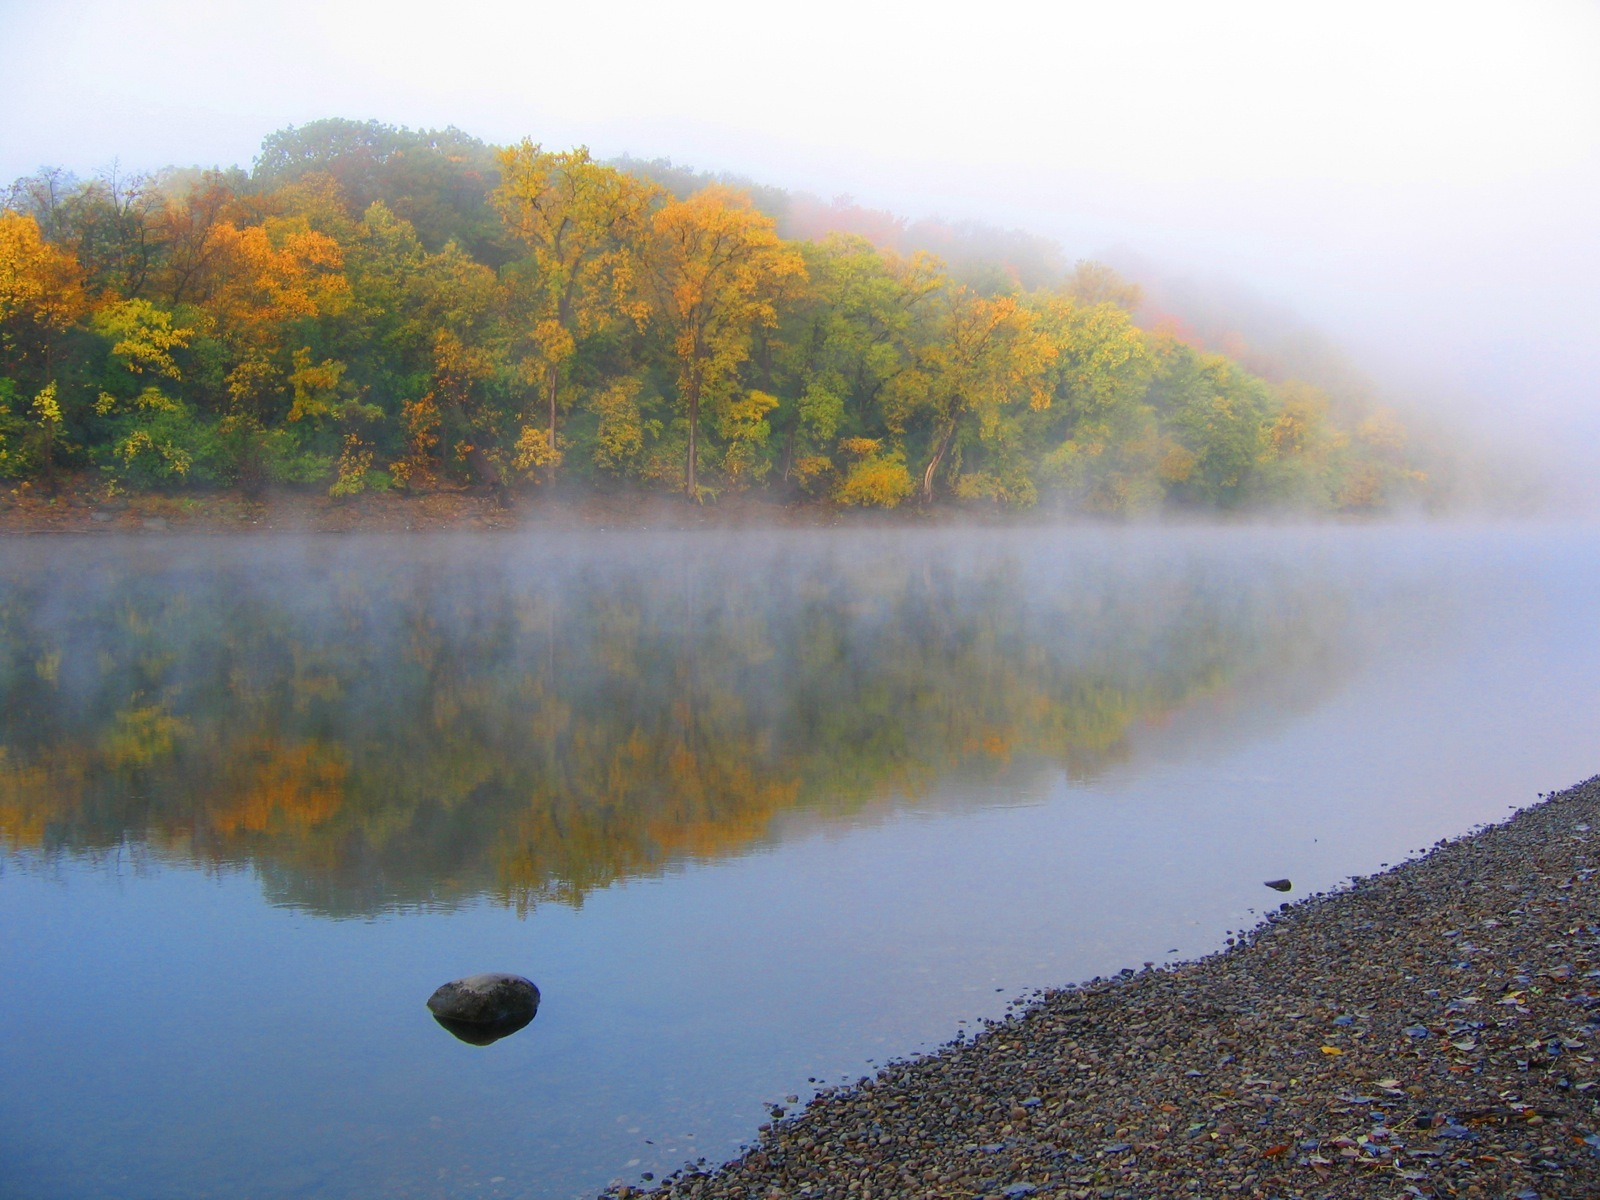 still, foggy morning near Hidden Falls along the Mississippi River ...